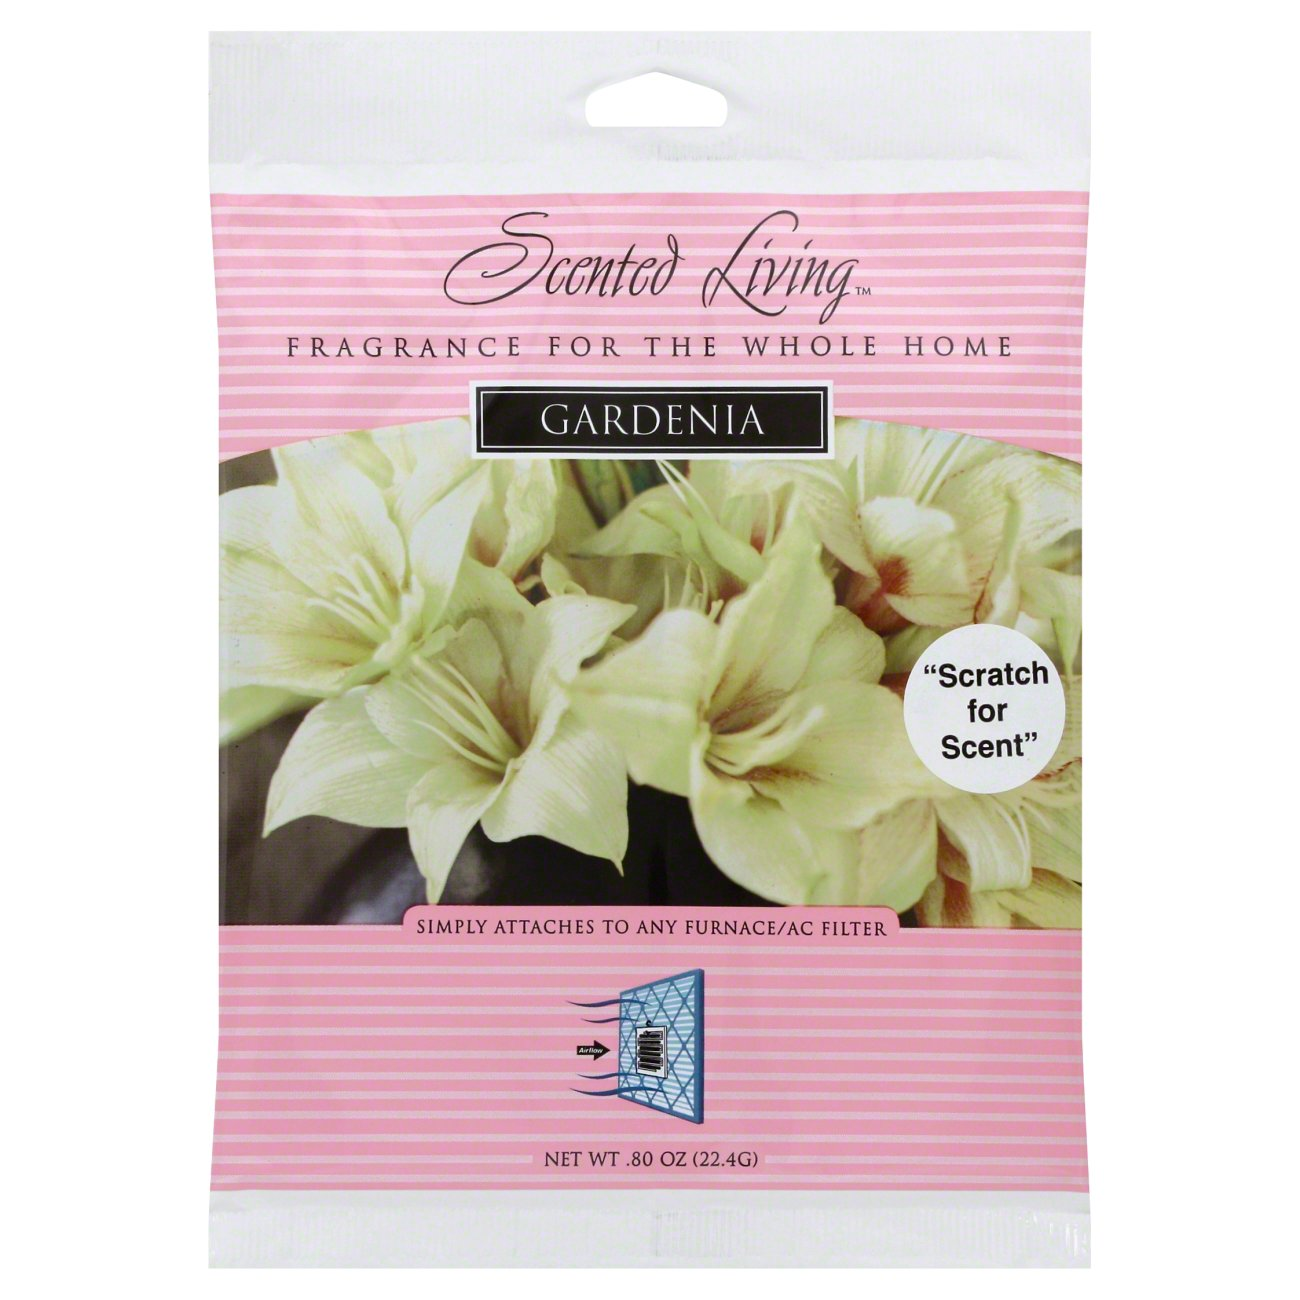 Scented Living Gardenia Air Filter Fragrance   Shop Air Filters At HEB